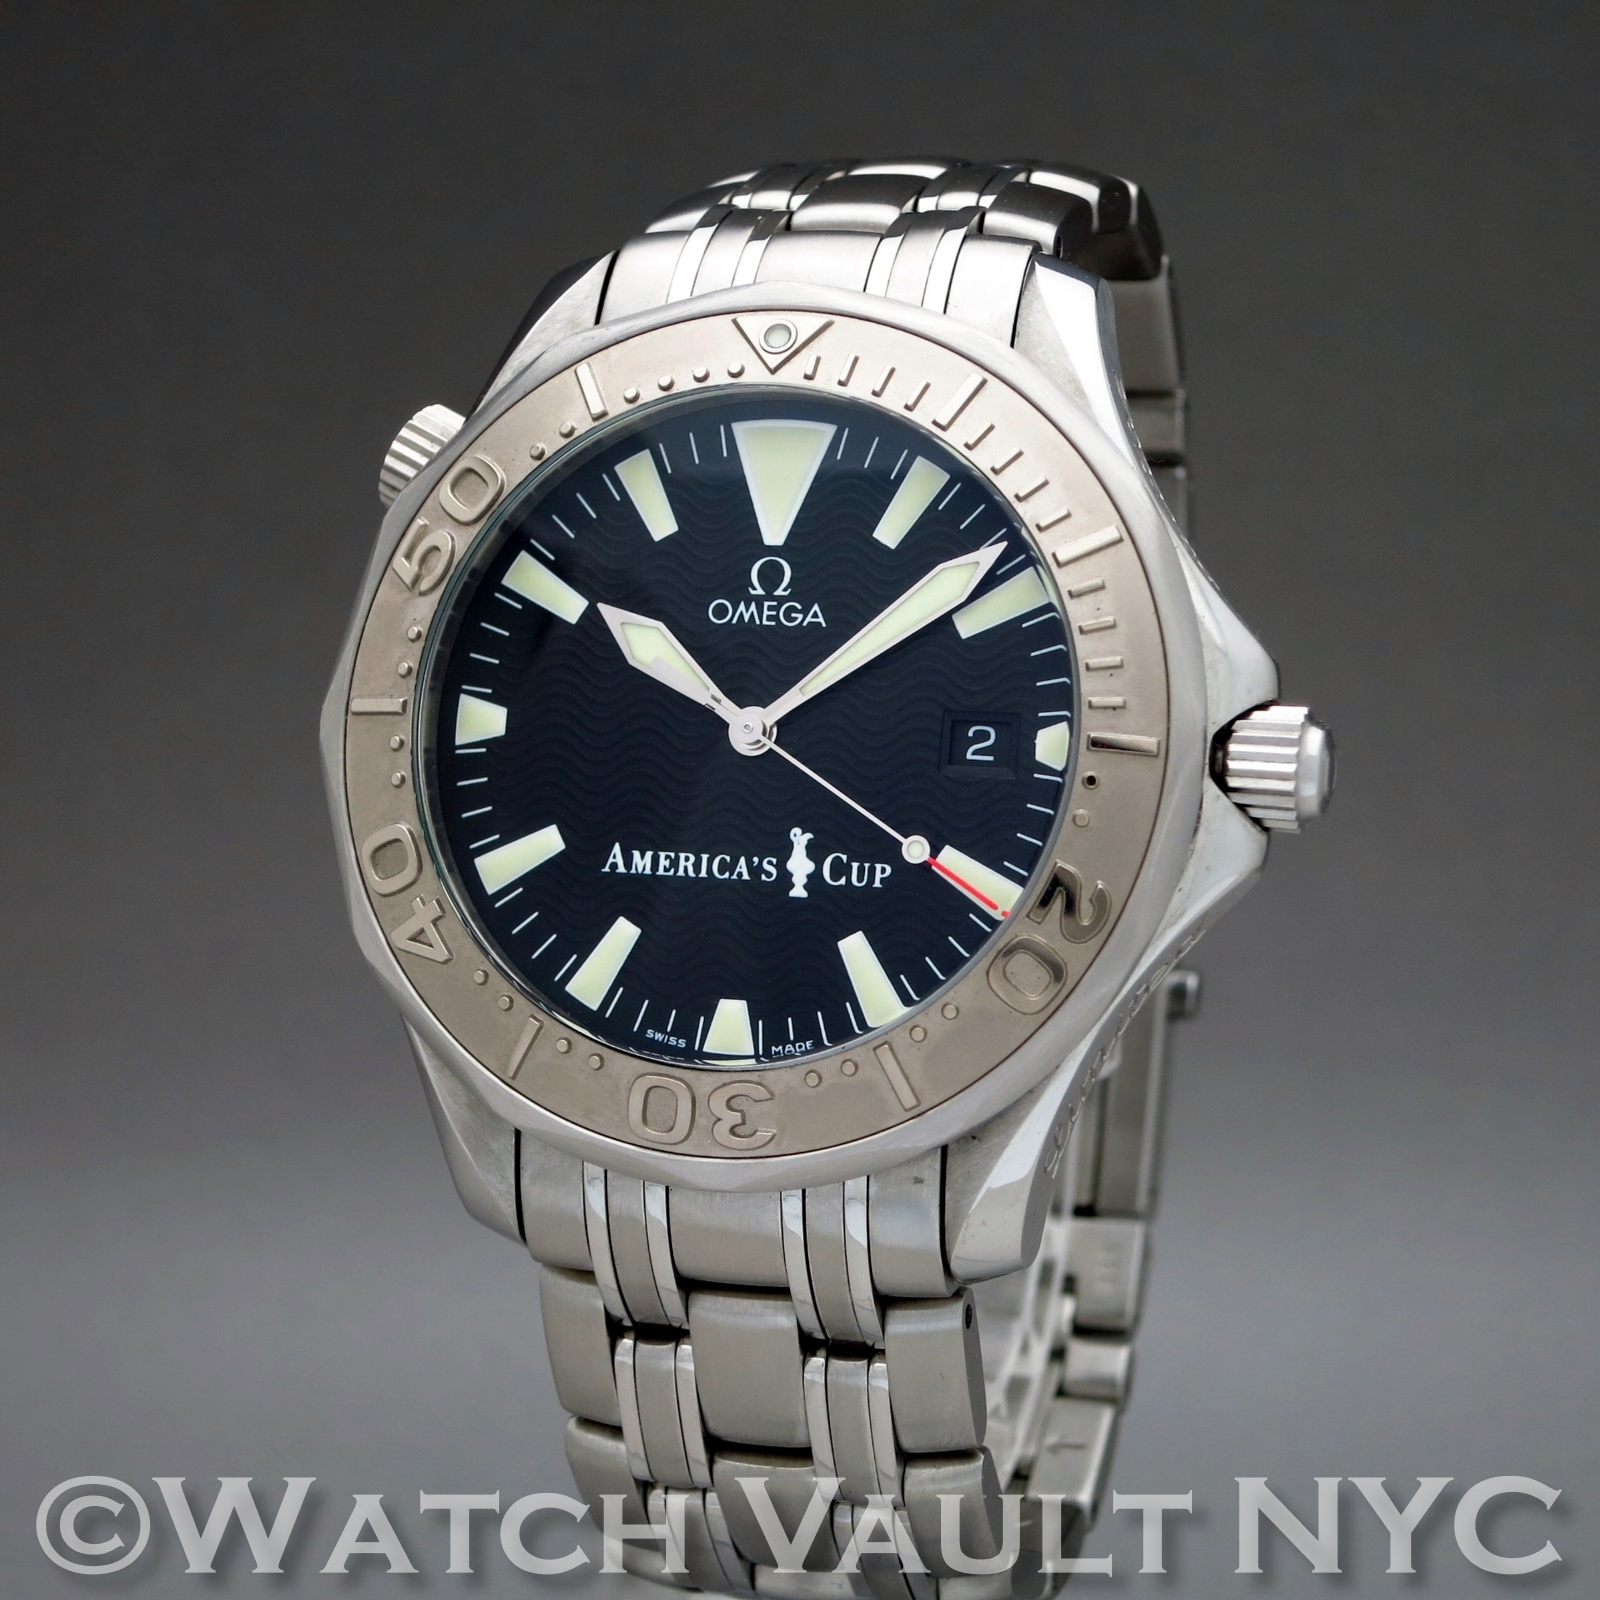 Omega seamaster professional americas cup limited numbered edition 41mm auto for Omega seamaster professional